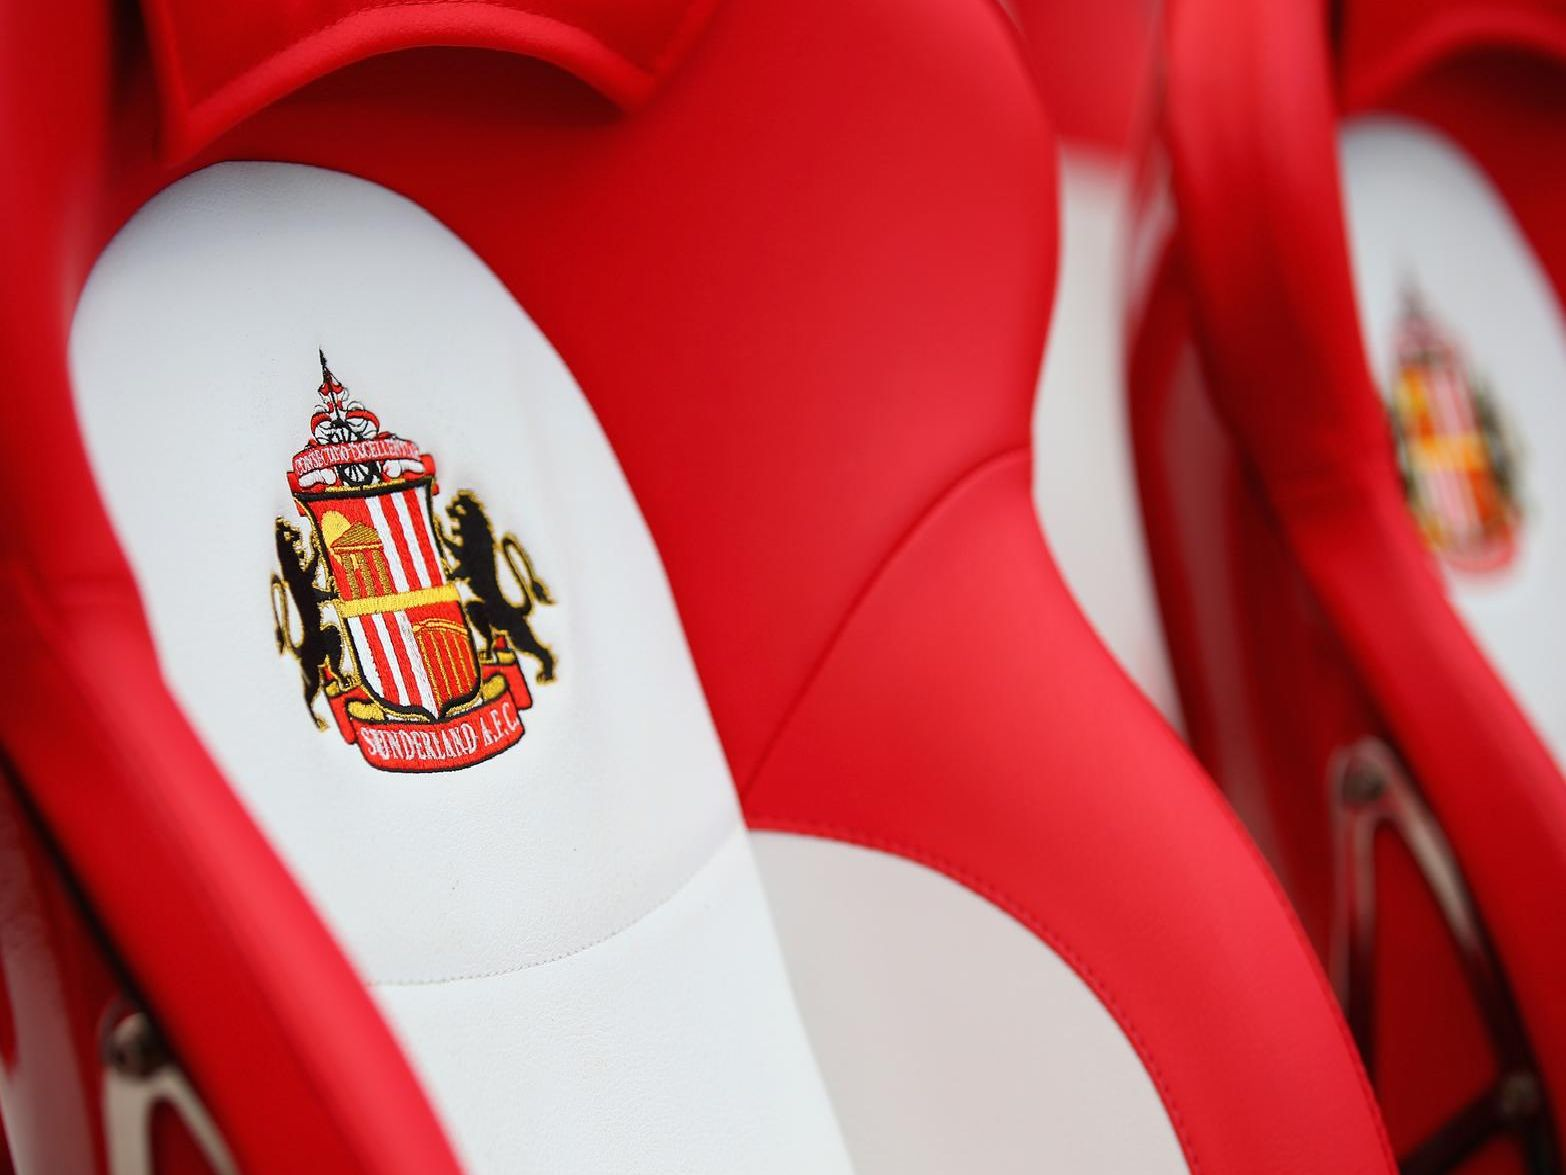 We examine the 23 transfer deals that saw Sunderland AFC spalsh out 2.8m in agent fees